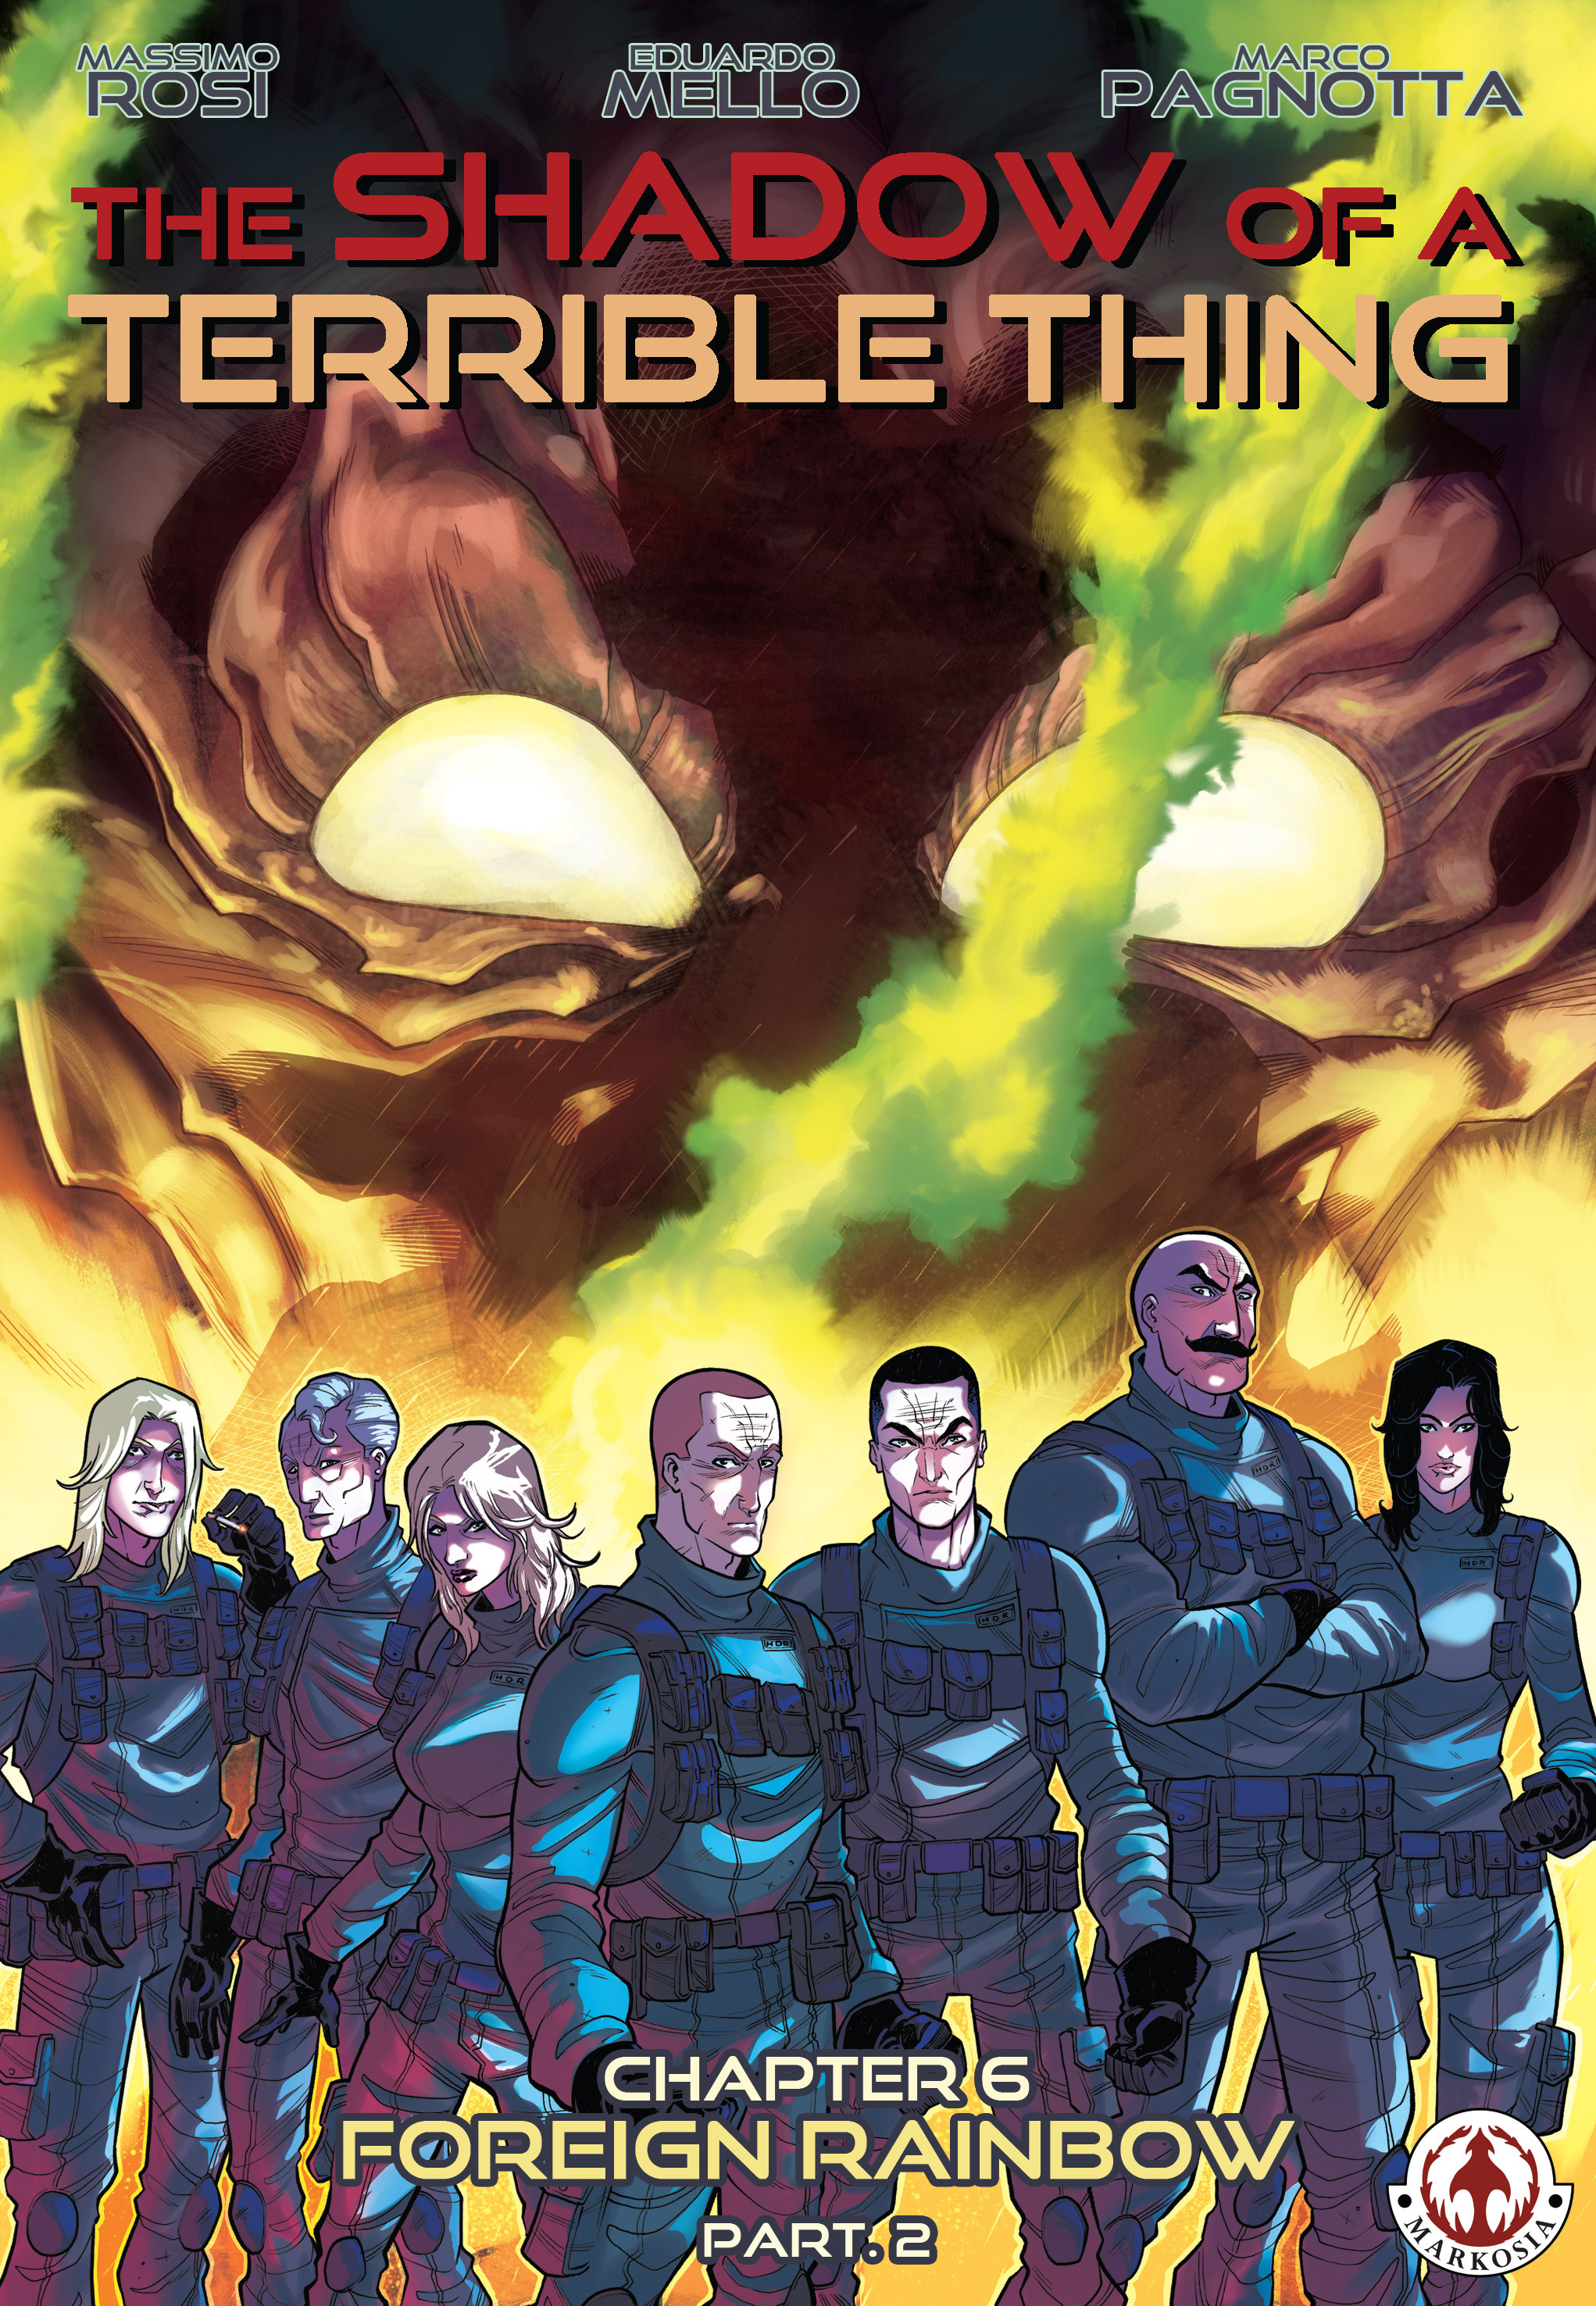 Read online The Shadow of a Terrible Thing comic -  Issue # TPB - 117